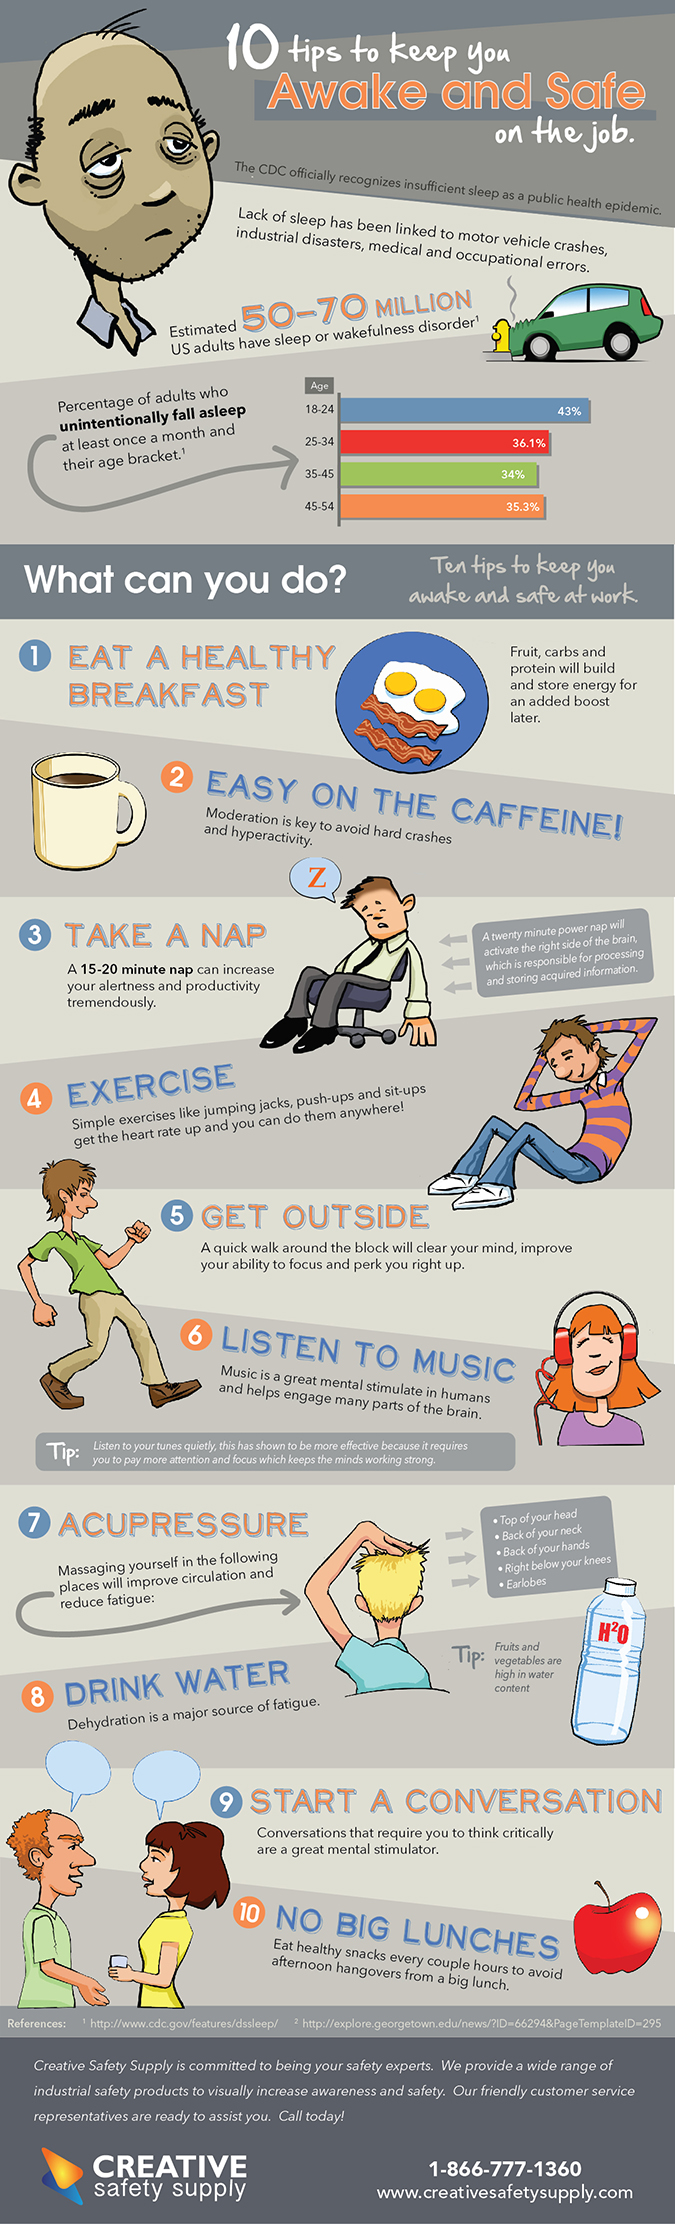 10 Tips to keep you awake and safe on the job